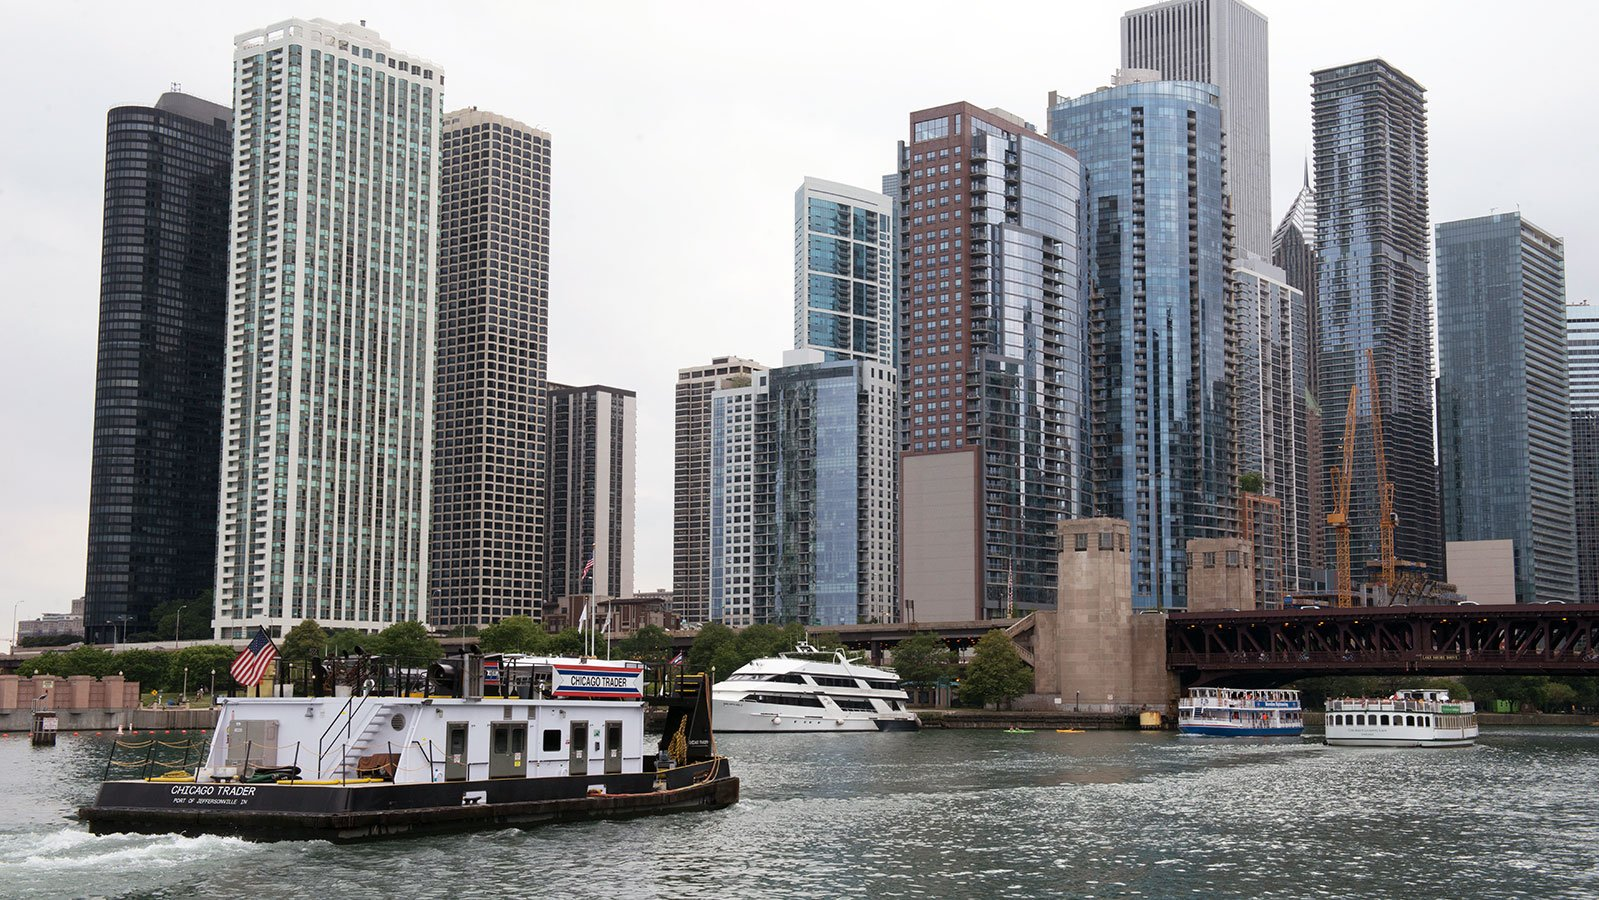 Boats along the Chicago River near the Chicago Lock and Lake Michigan in 2017